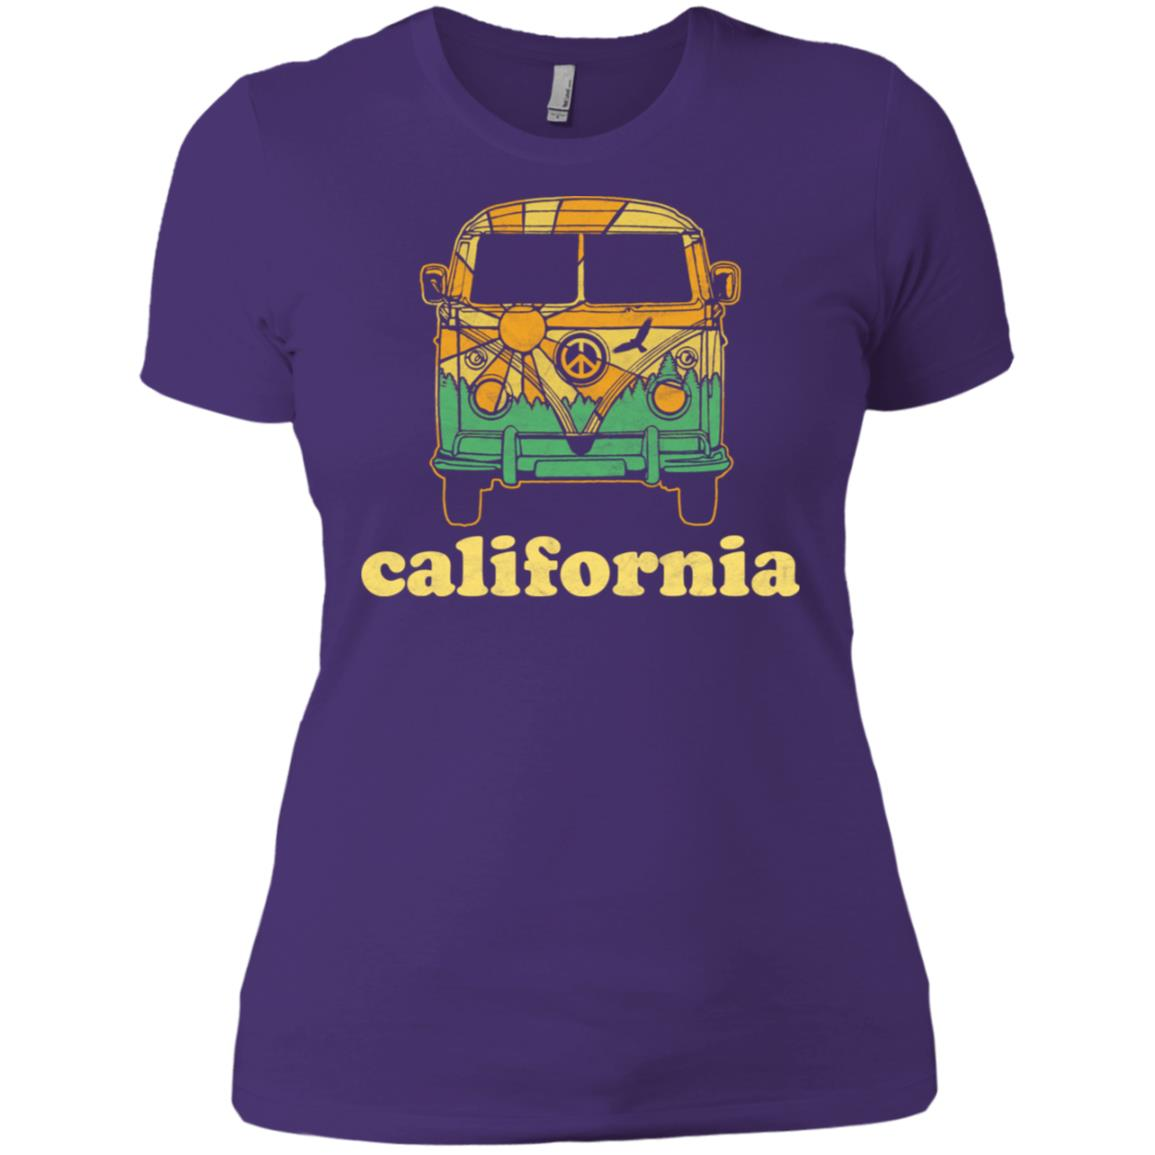 California Hippie Van Camper Vintage Nature Tee Women Short Sleeve